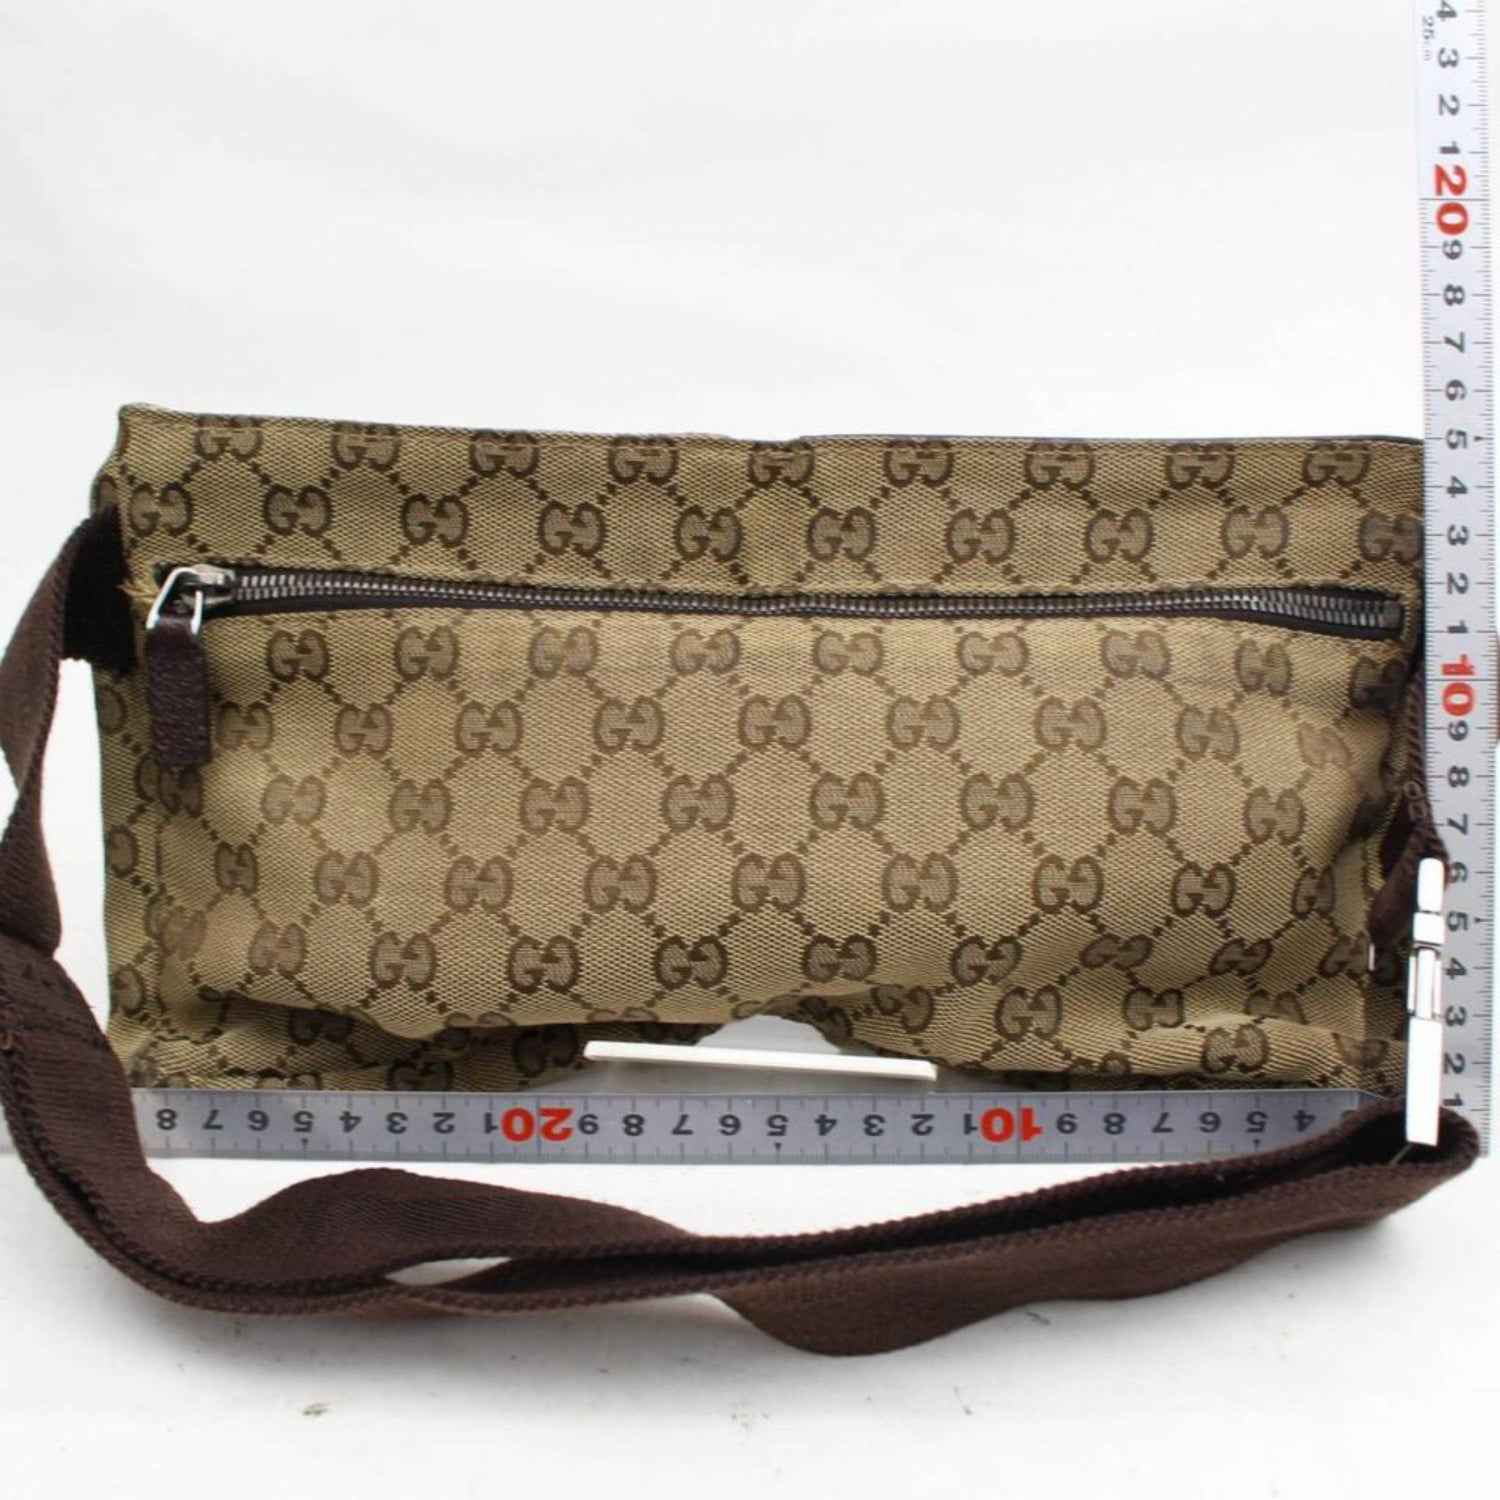 3d5d07047245 Gucci Monogram Gg Waist Pouch Fanny Pack 868298 Brown Canvas Cross Body Bag  For Sale at 1stdibs